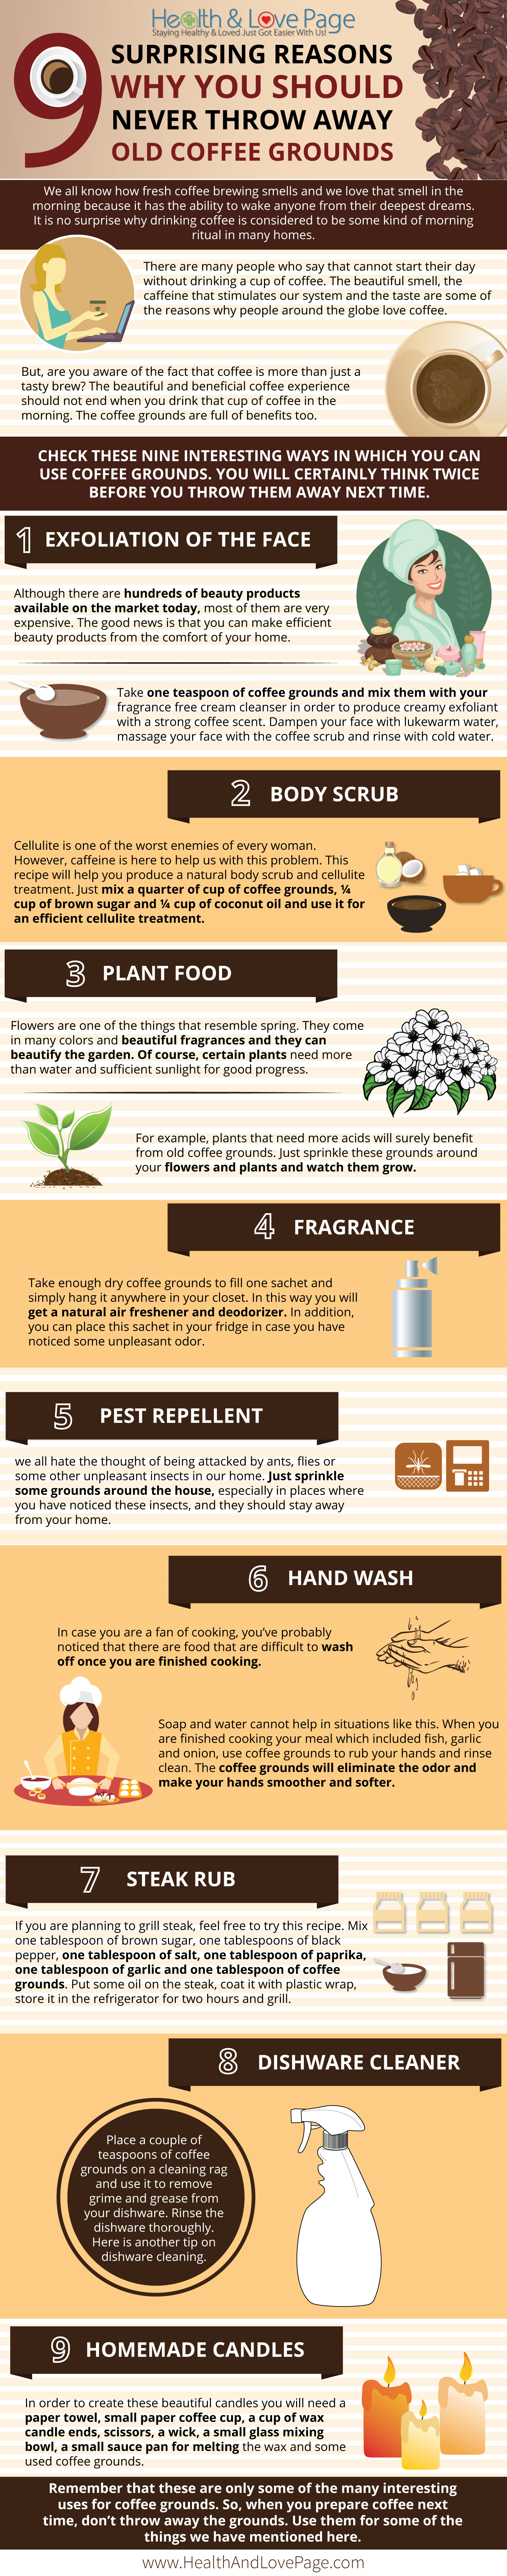 Never Throw Away Old Coffee Grounds Infographic